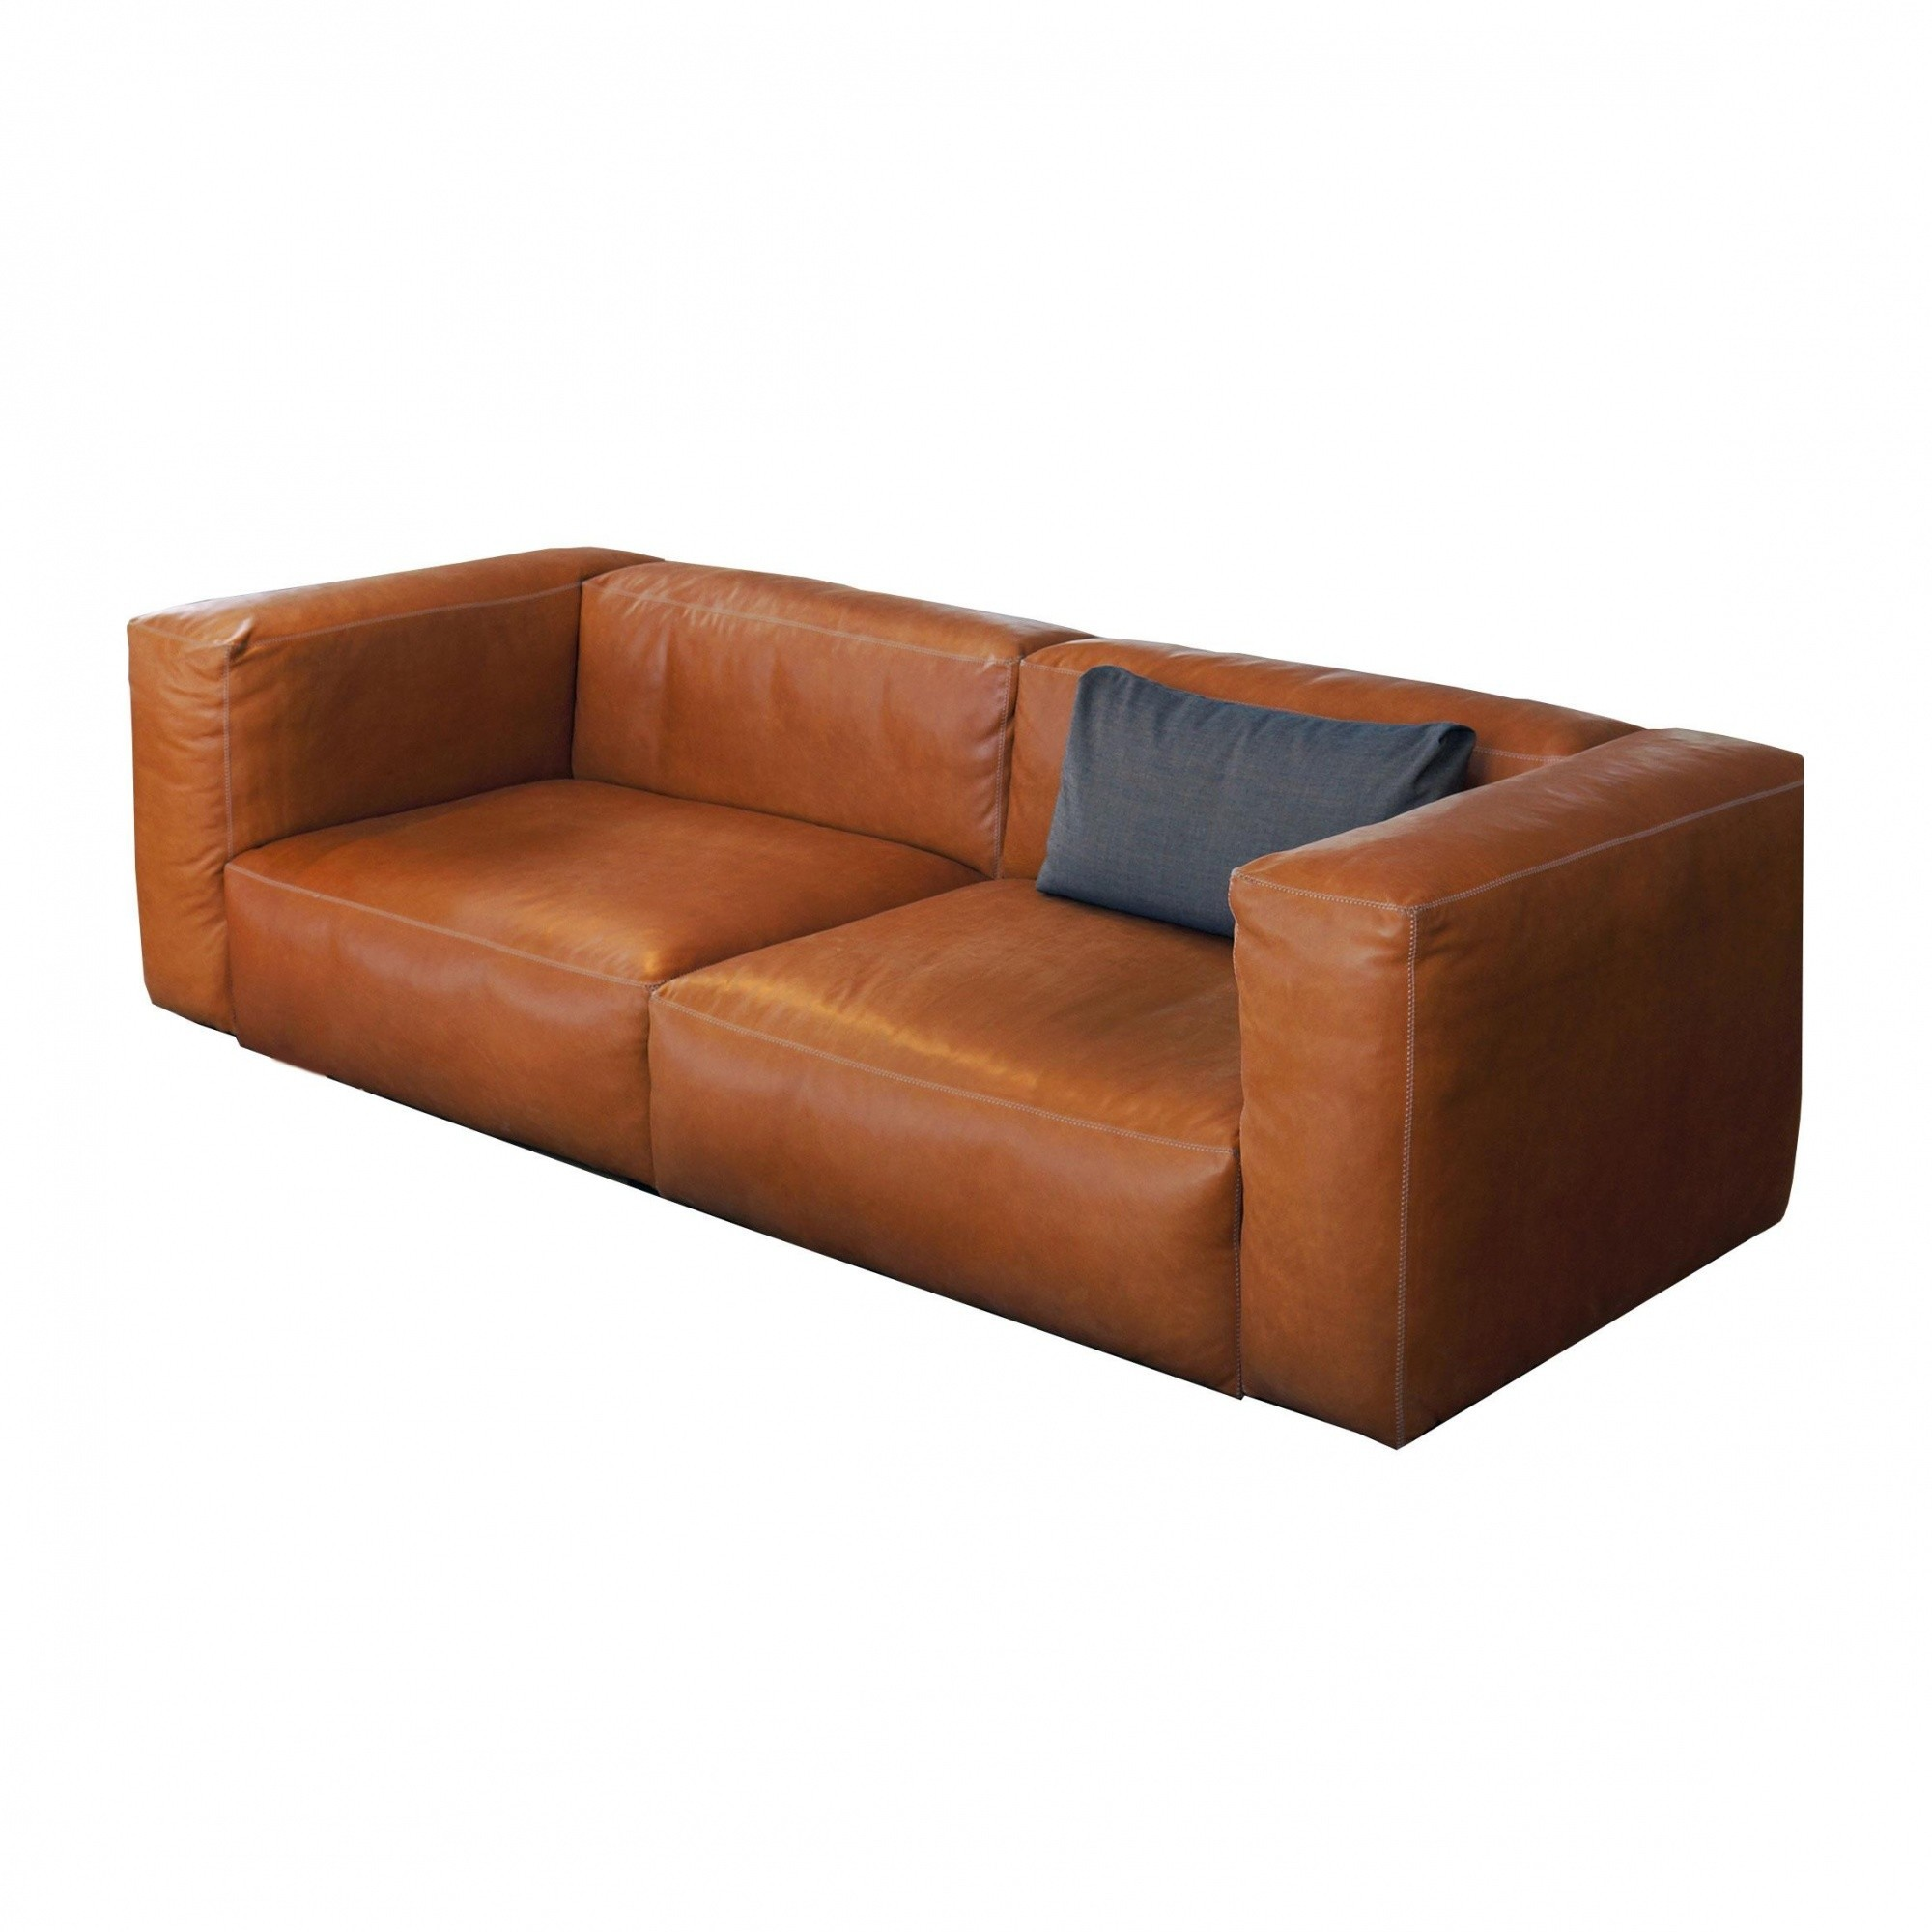 Bettsofa Leder Ledersofa Cognac Latest Bean Big Ecksofa Braun Vintage Sofa